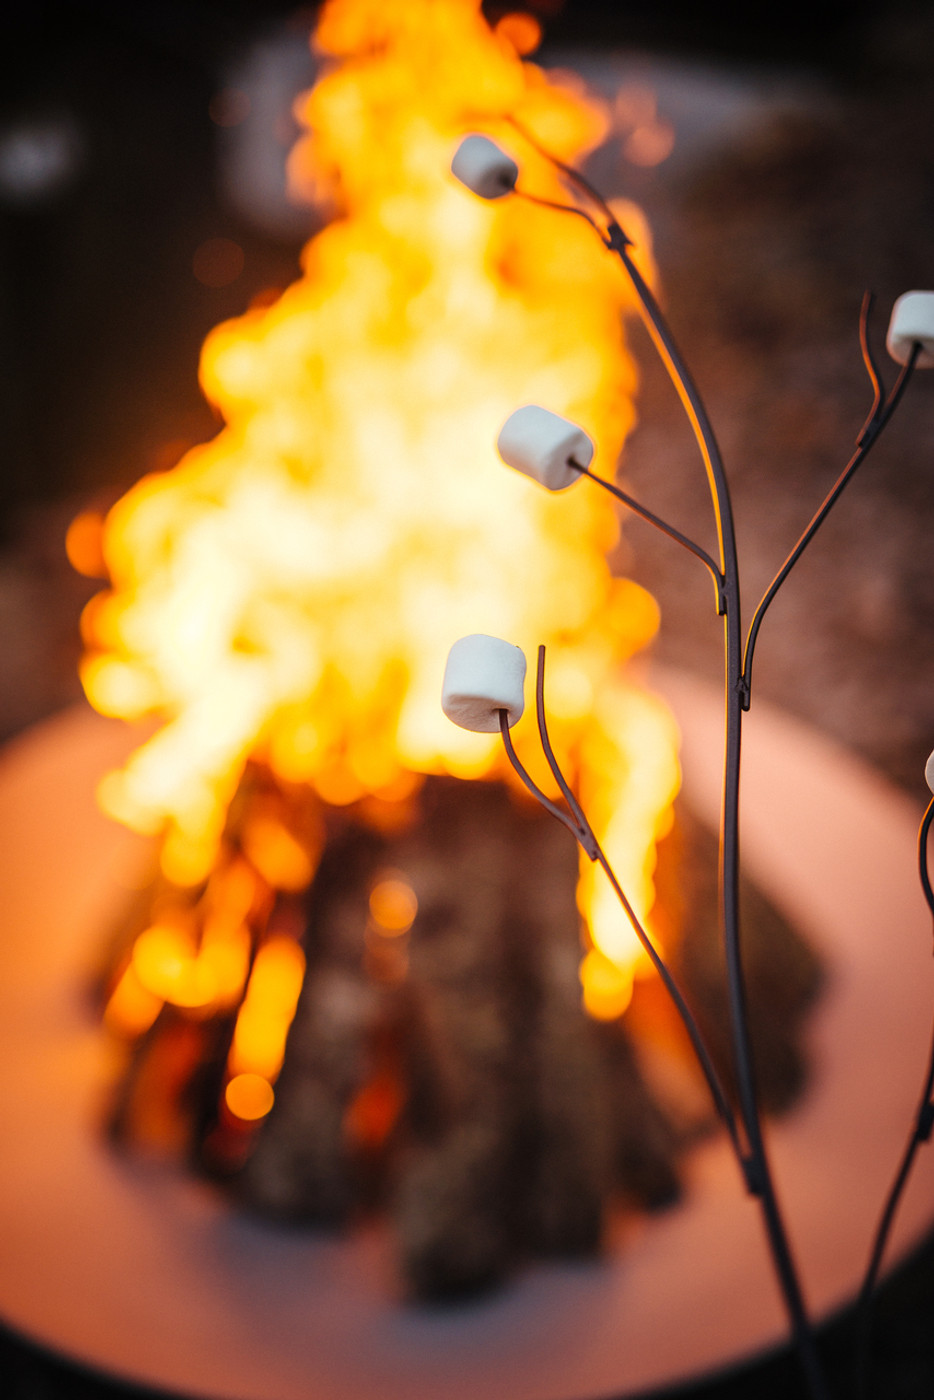 Nothing better than roasting marshmallows over an open fire in style with this branch style Marshmallow Roasting Art.